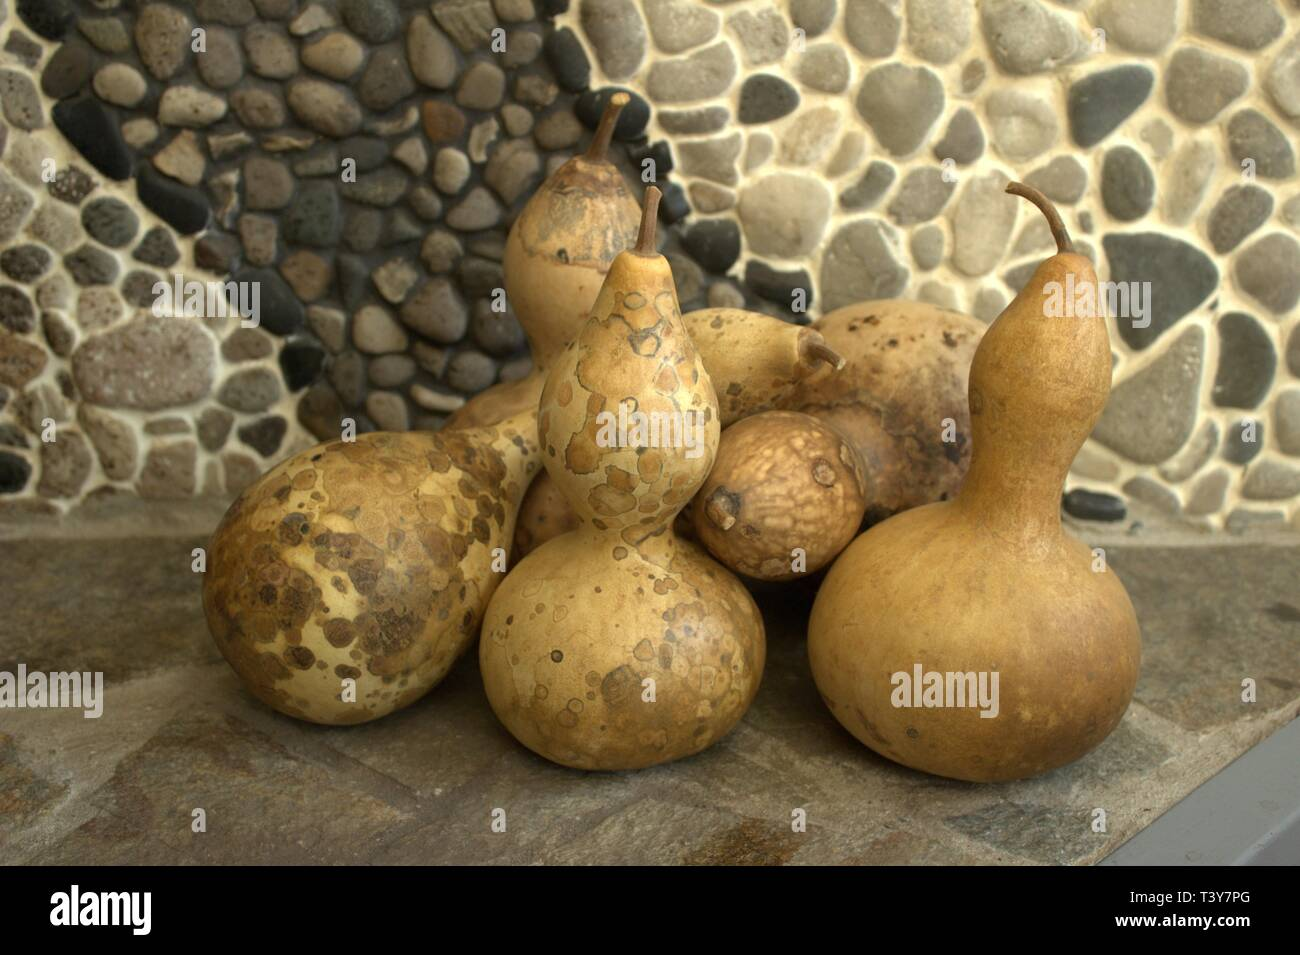 A Pile Of Dried Bottle Gourds, Ready For Crafting Stock Photo